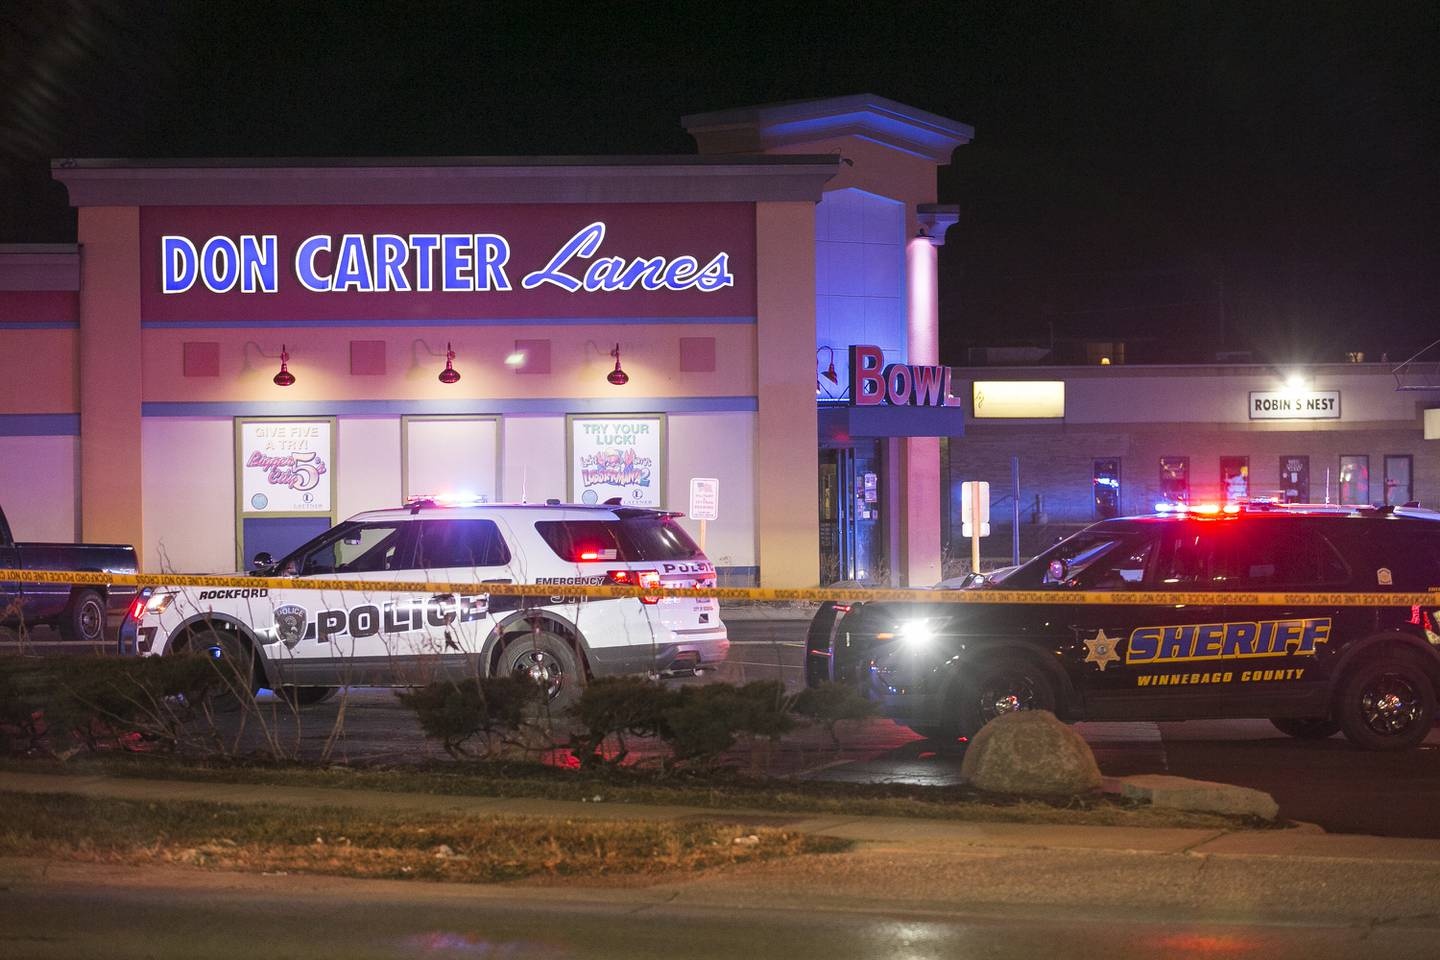 Rockford police and other law enforcement agencies investigate the scene of a shooting at a bowling alley Saturday, Dec. 26, 2020, in Rockford, Ill.